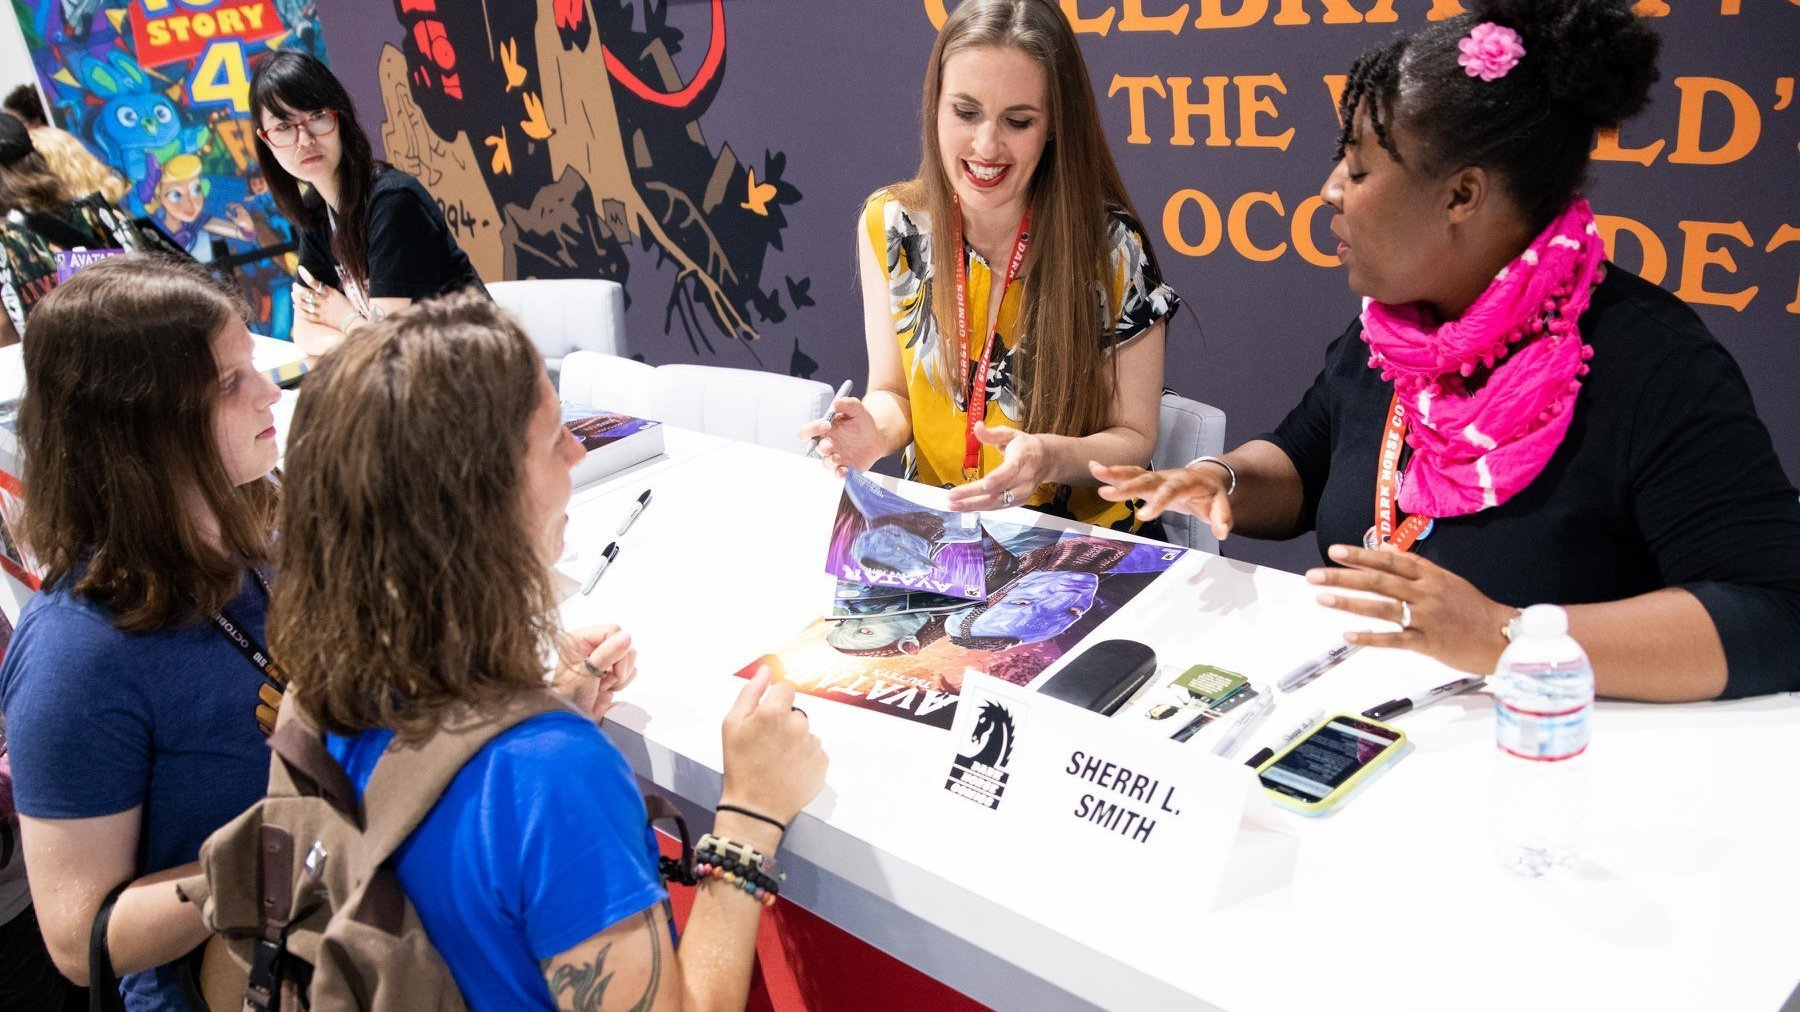 Shea and Sherri discuss Avatar and the Avatar comics with fans